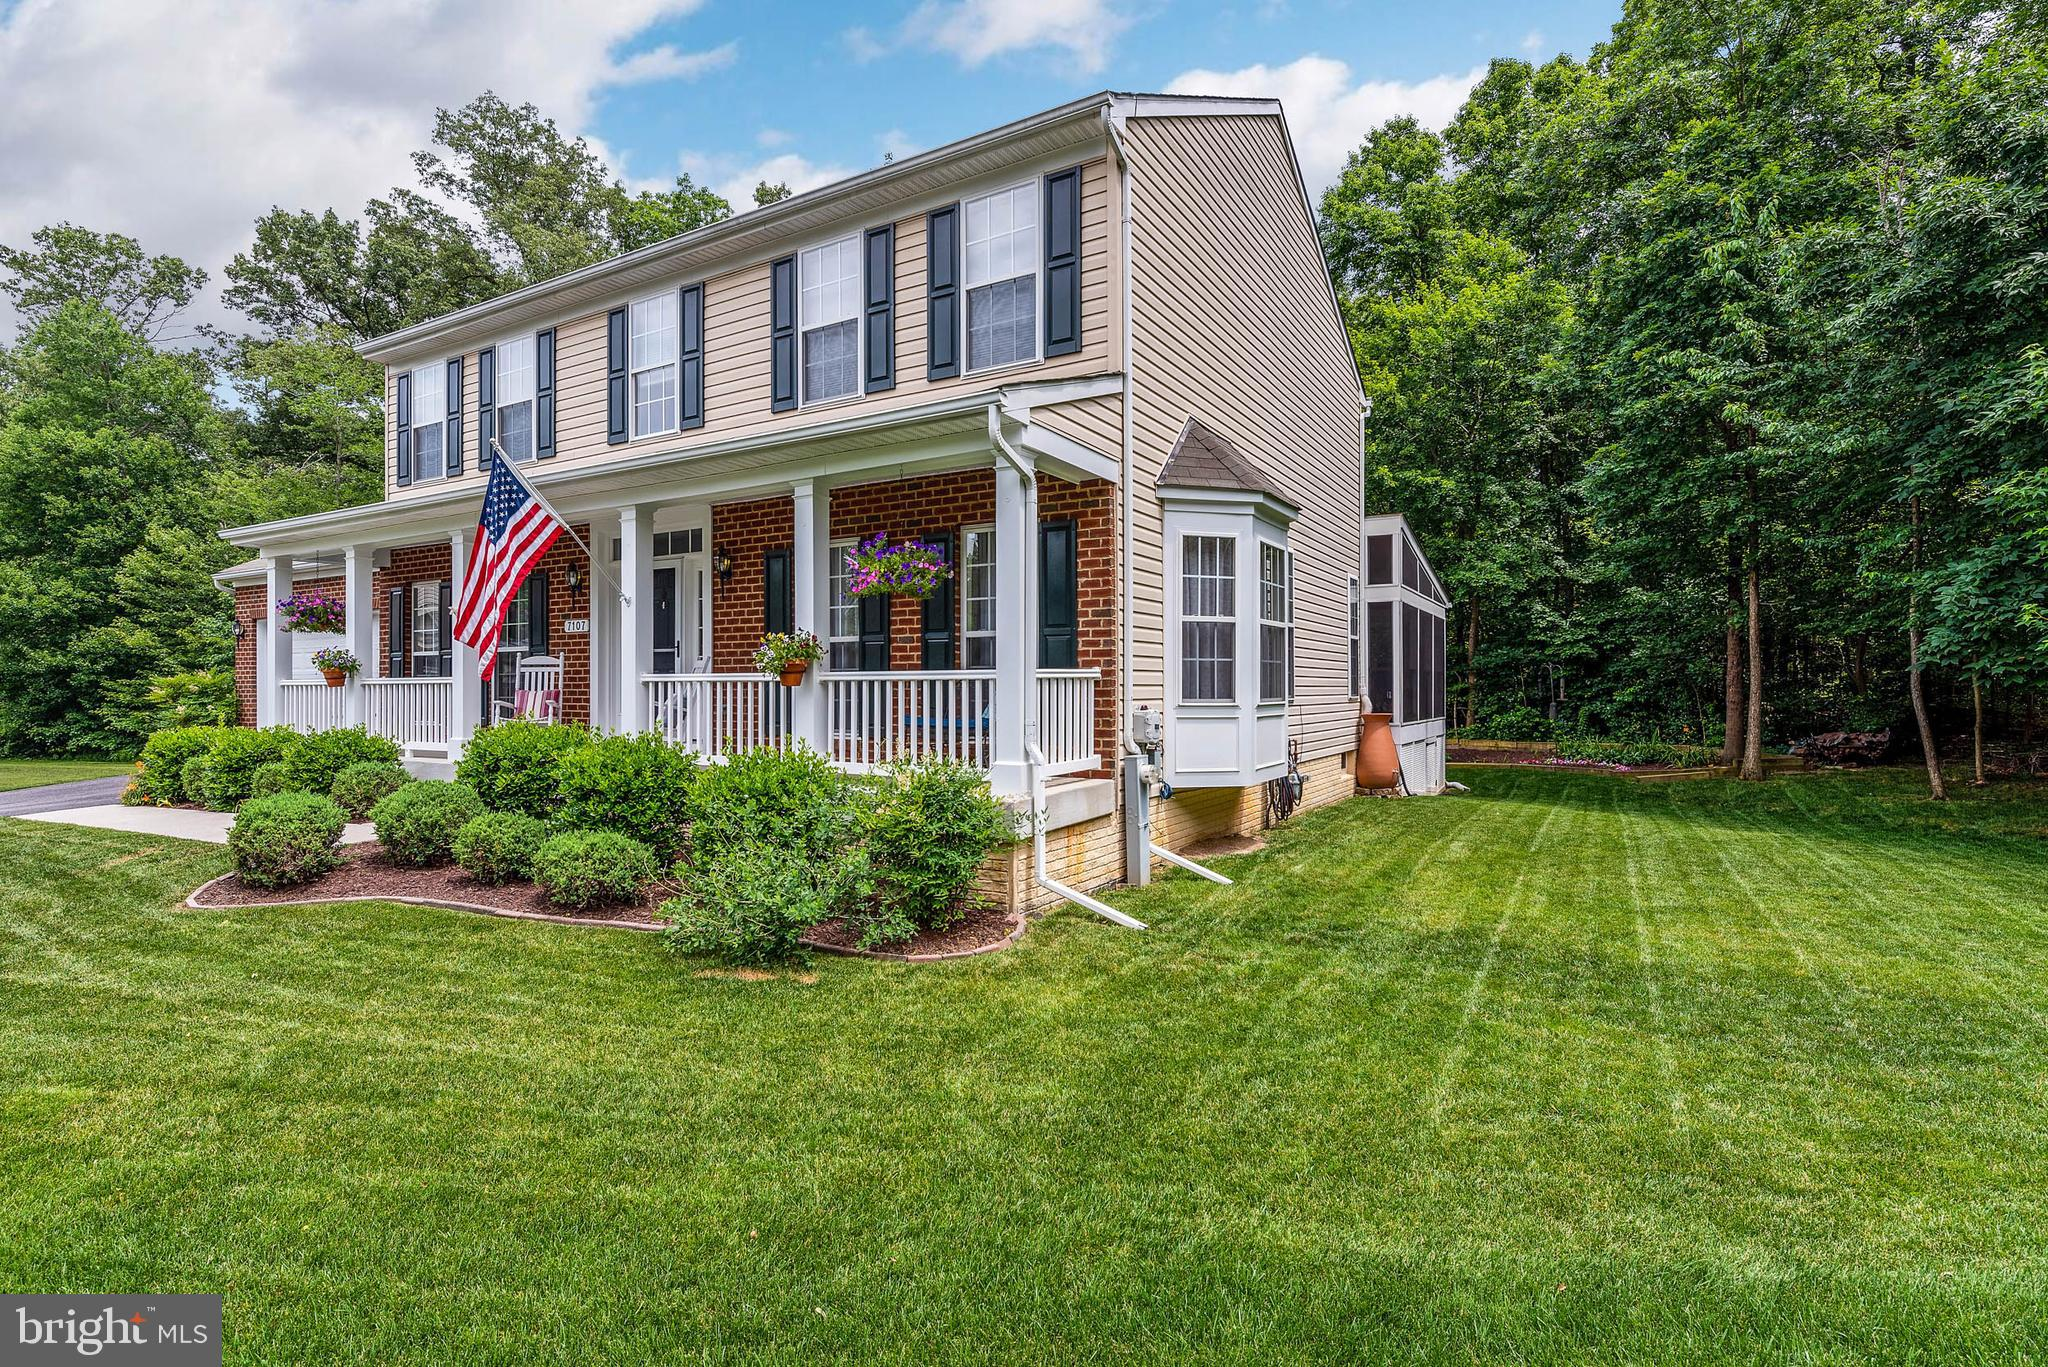 7107 Forest Creek Way, Hanover, MD, 21076